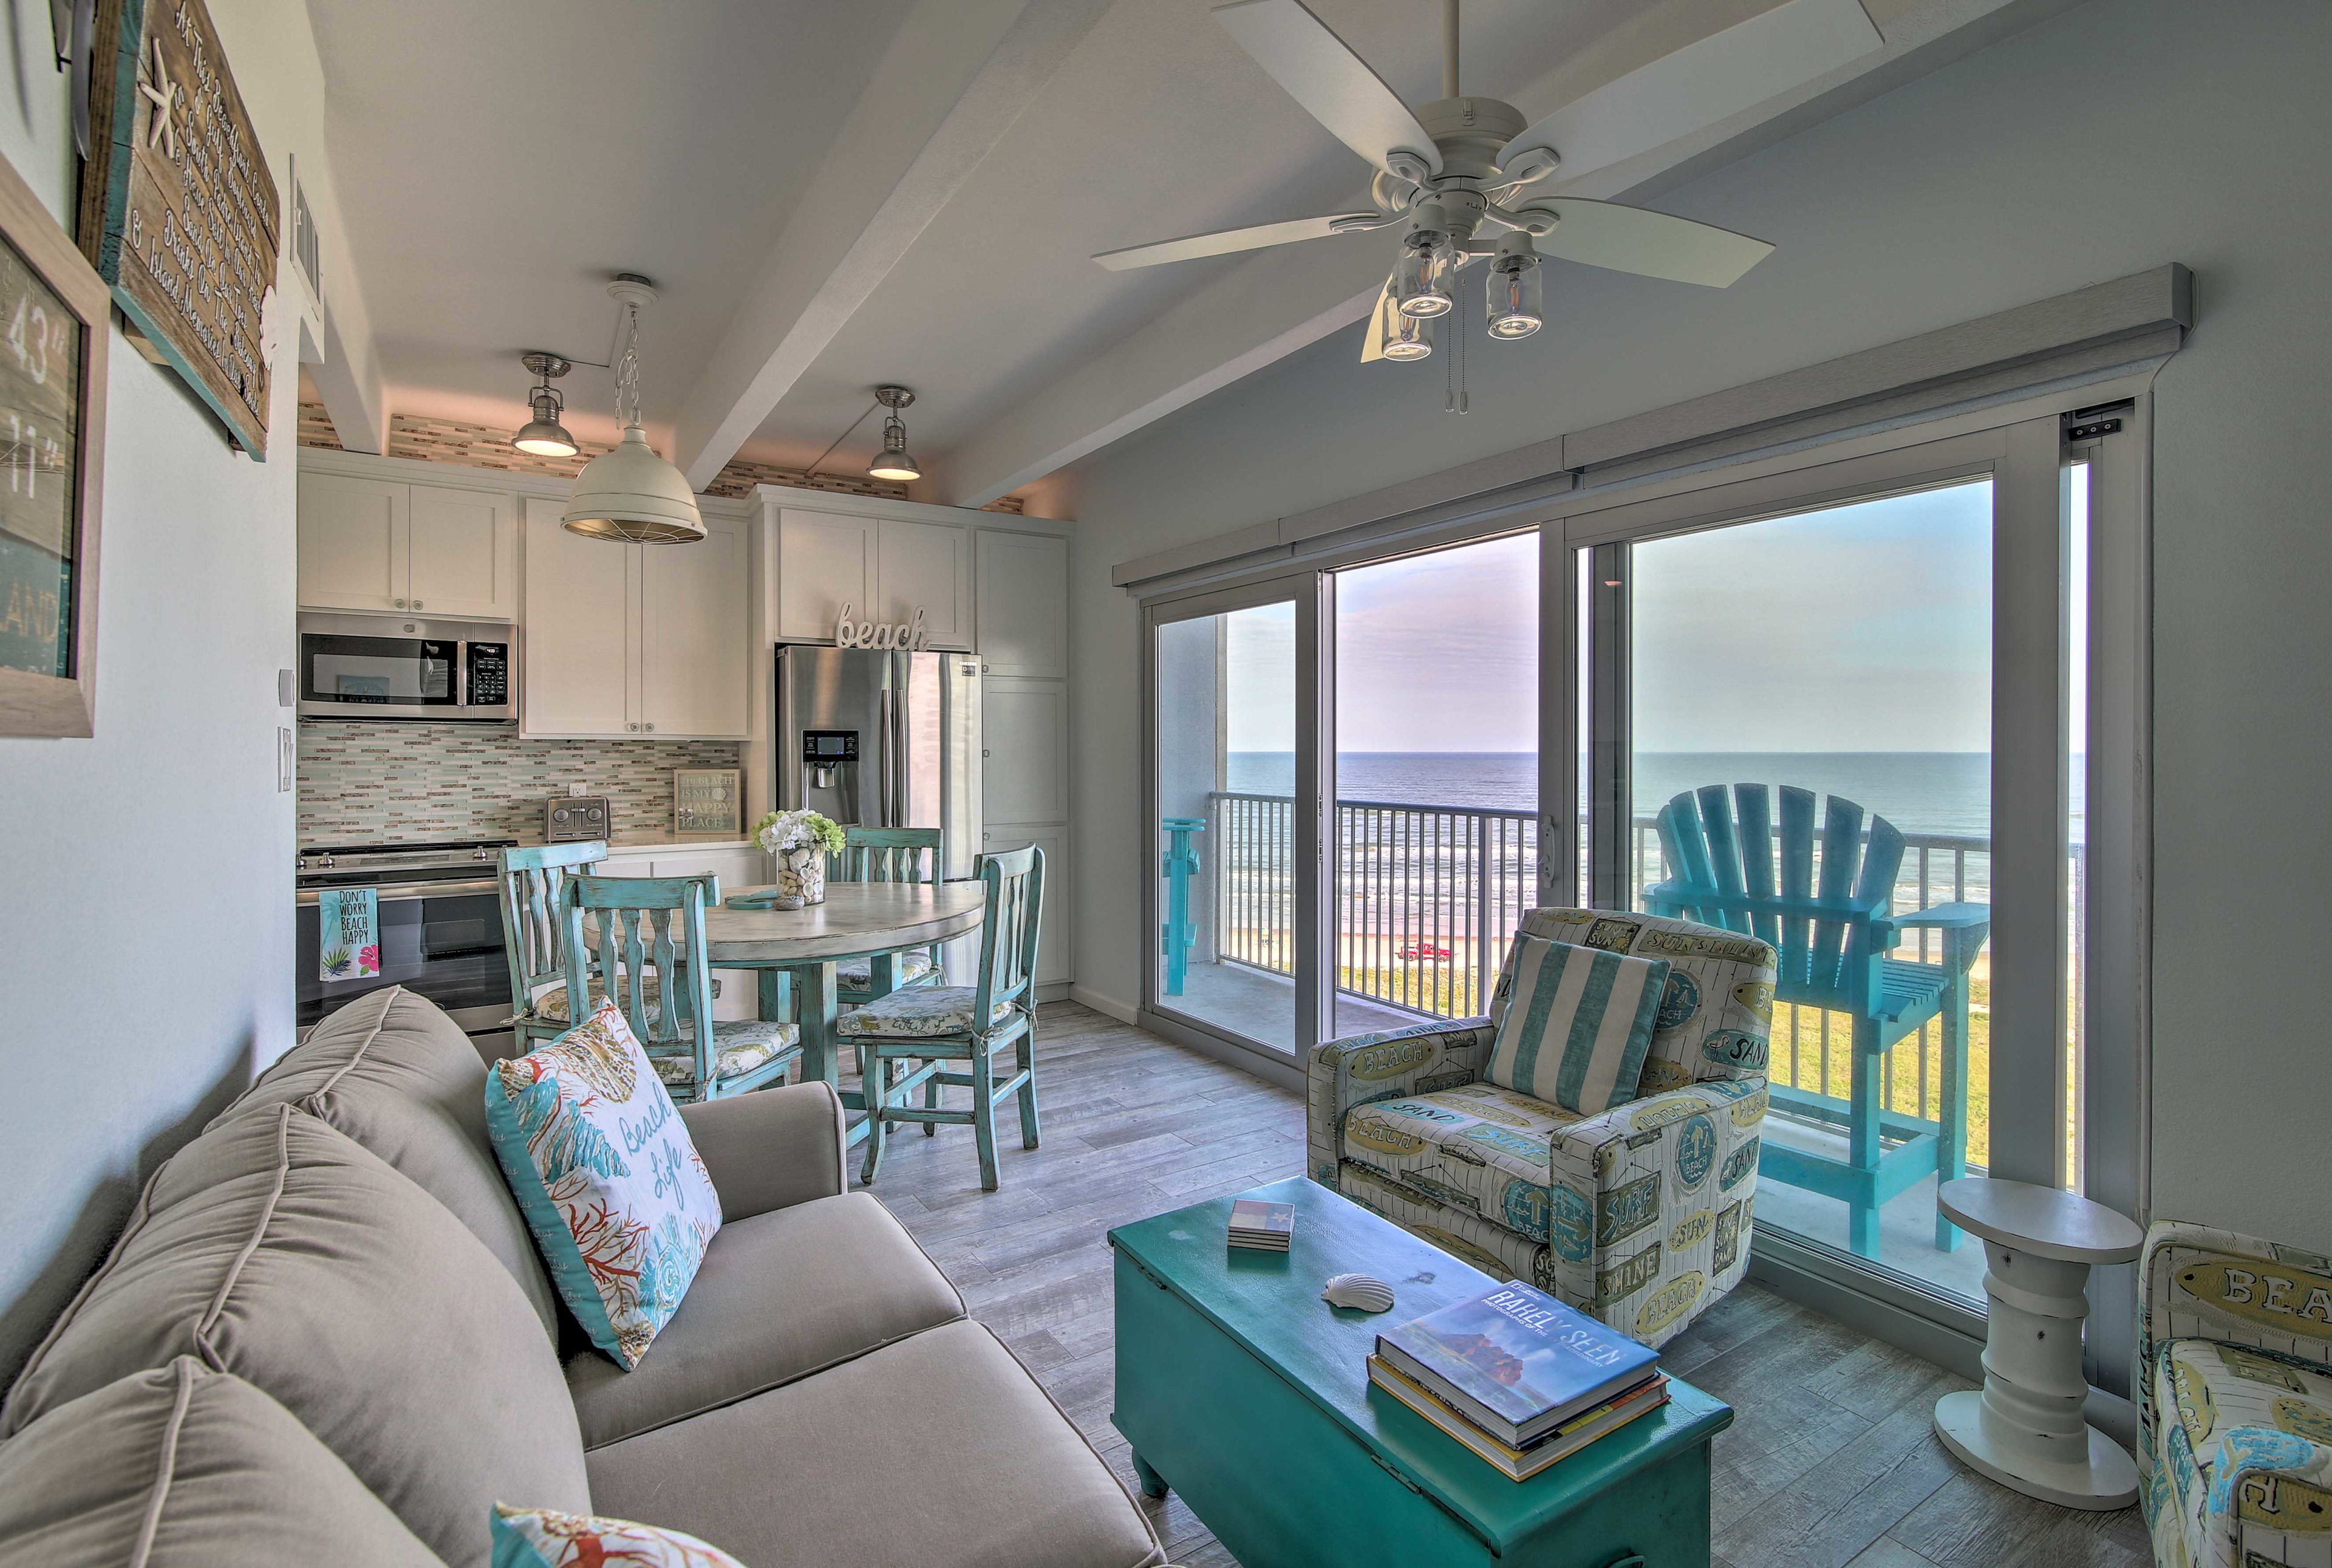 South Padre Island Vacation Rental | 2BR | 2BA | 664 Sq Ft | 7th Floor